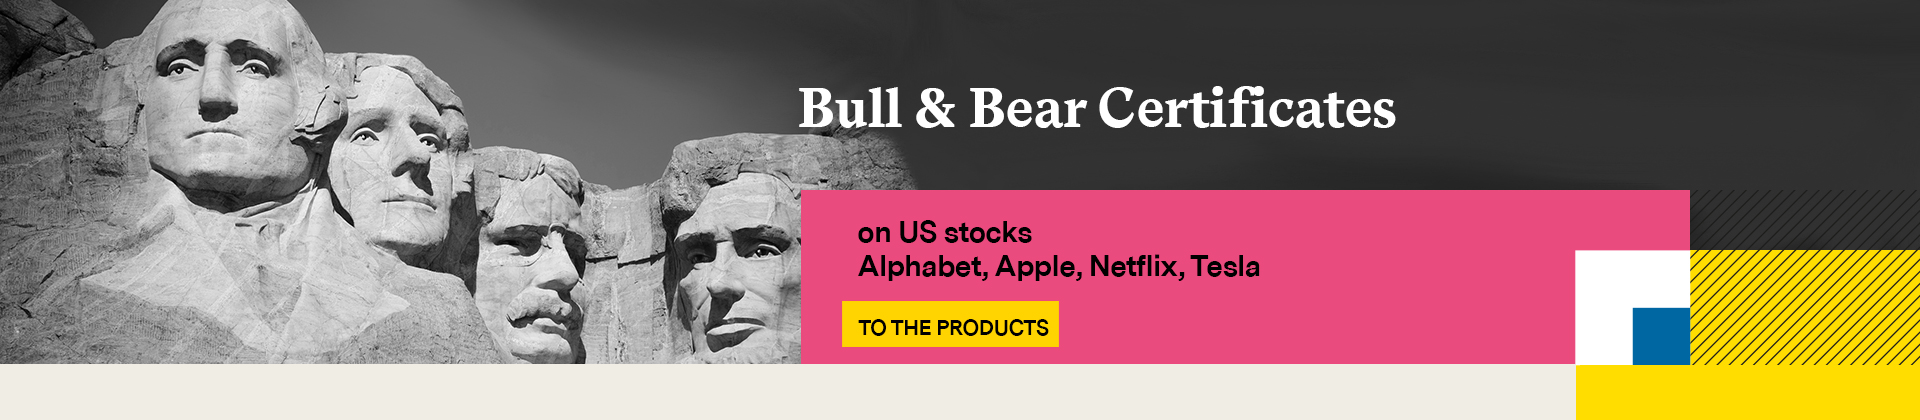 BULL BEAR US STOCKS